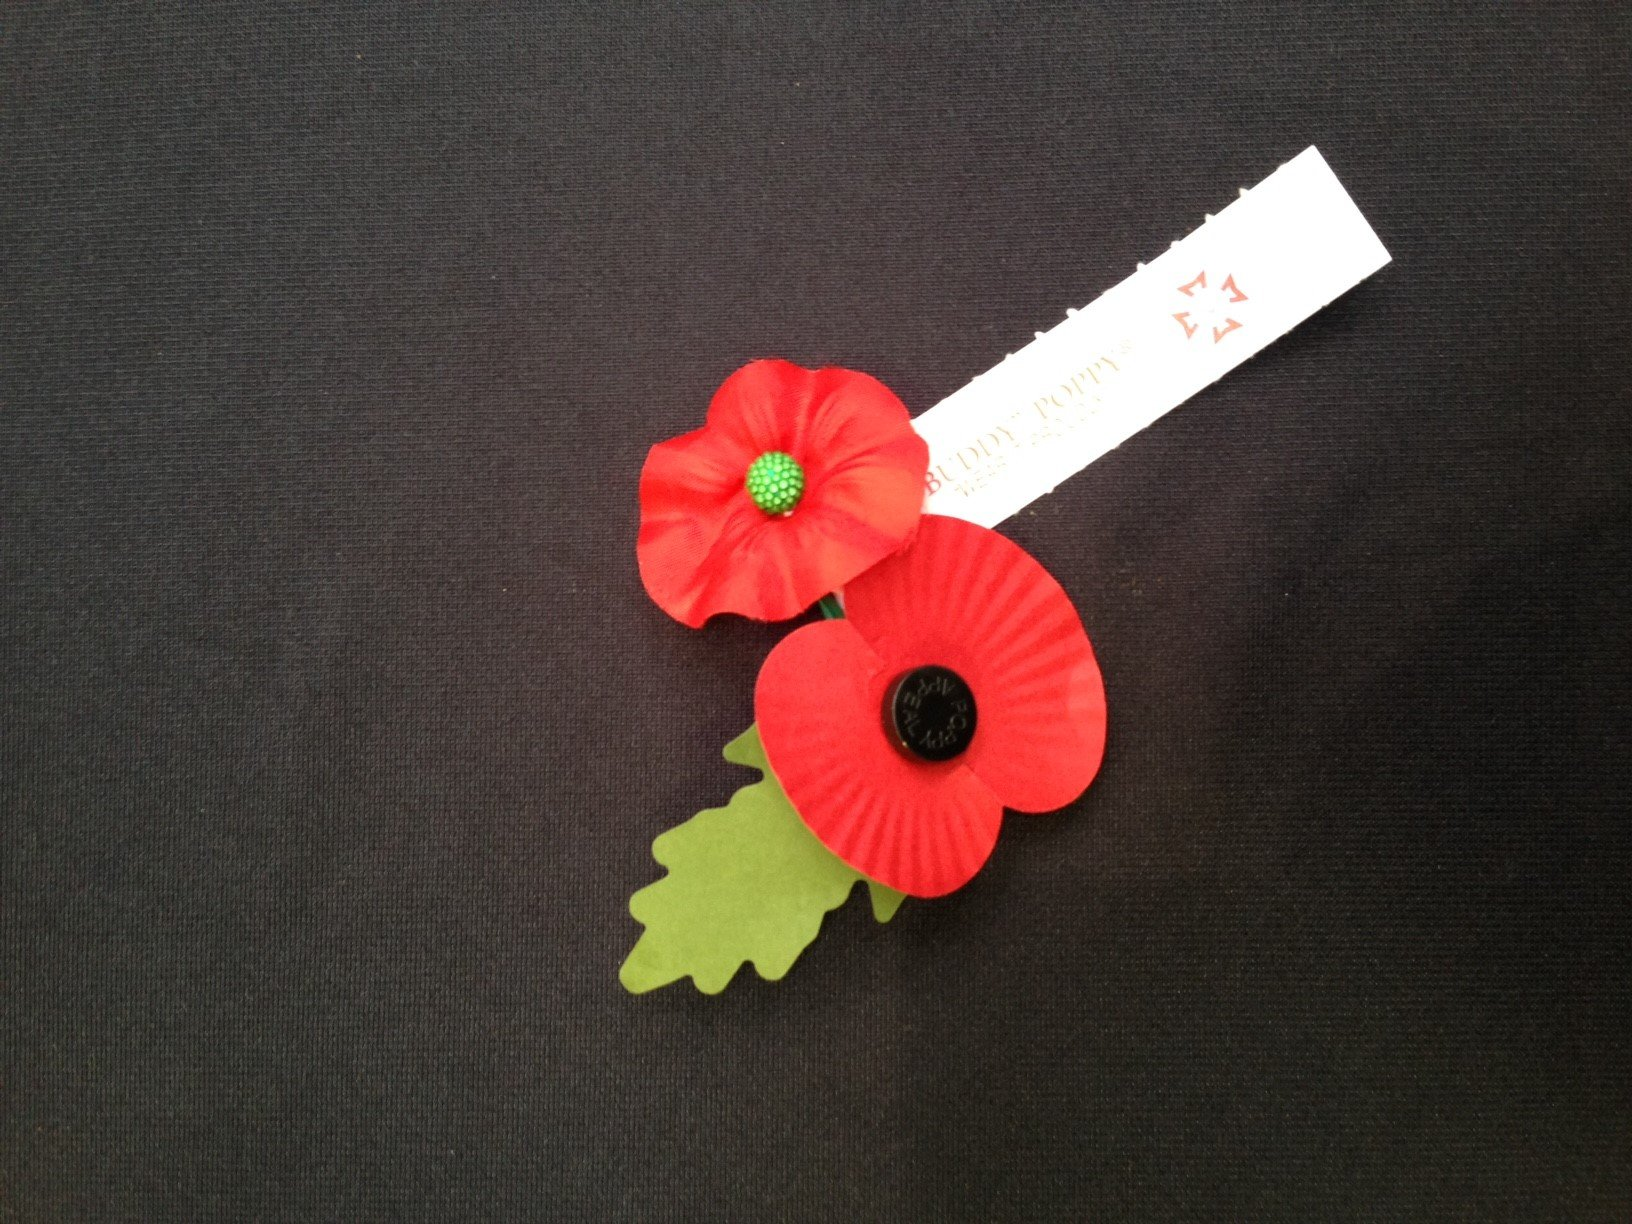 Vfw Gives American British Poppies In Remembrance